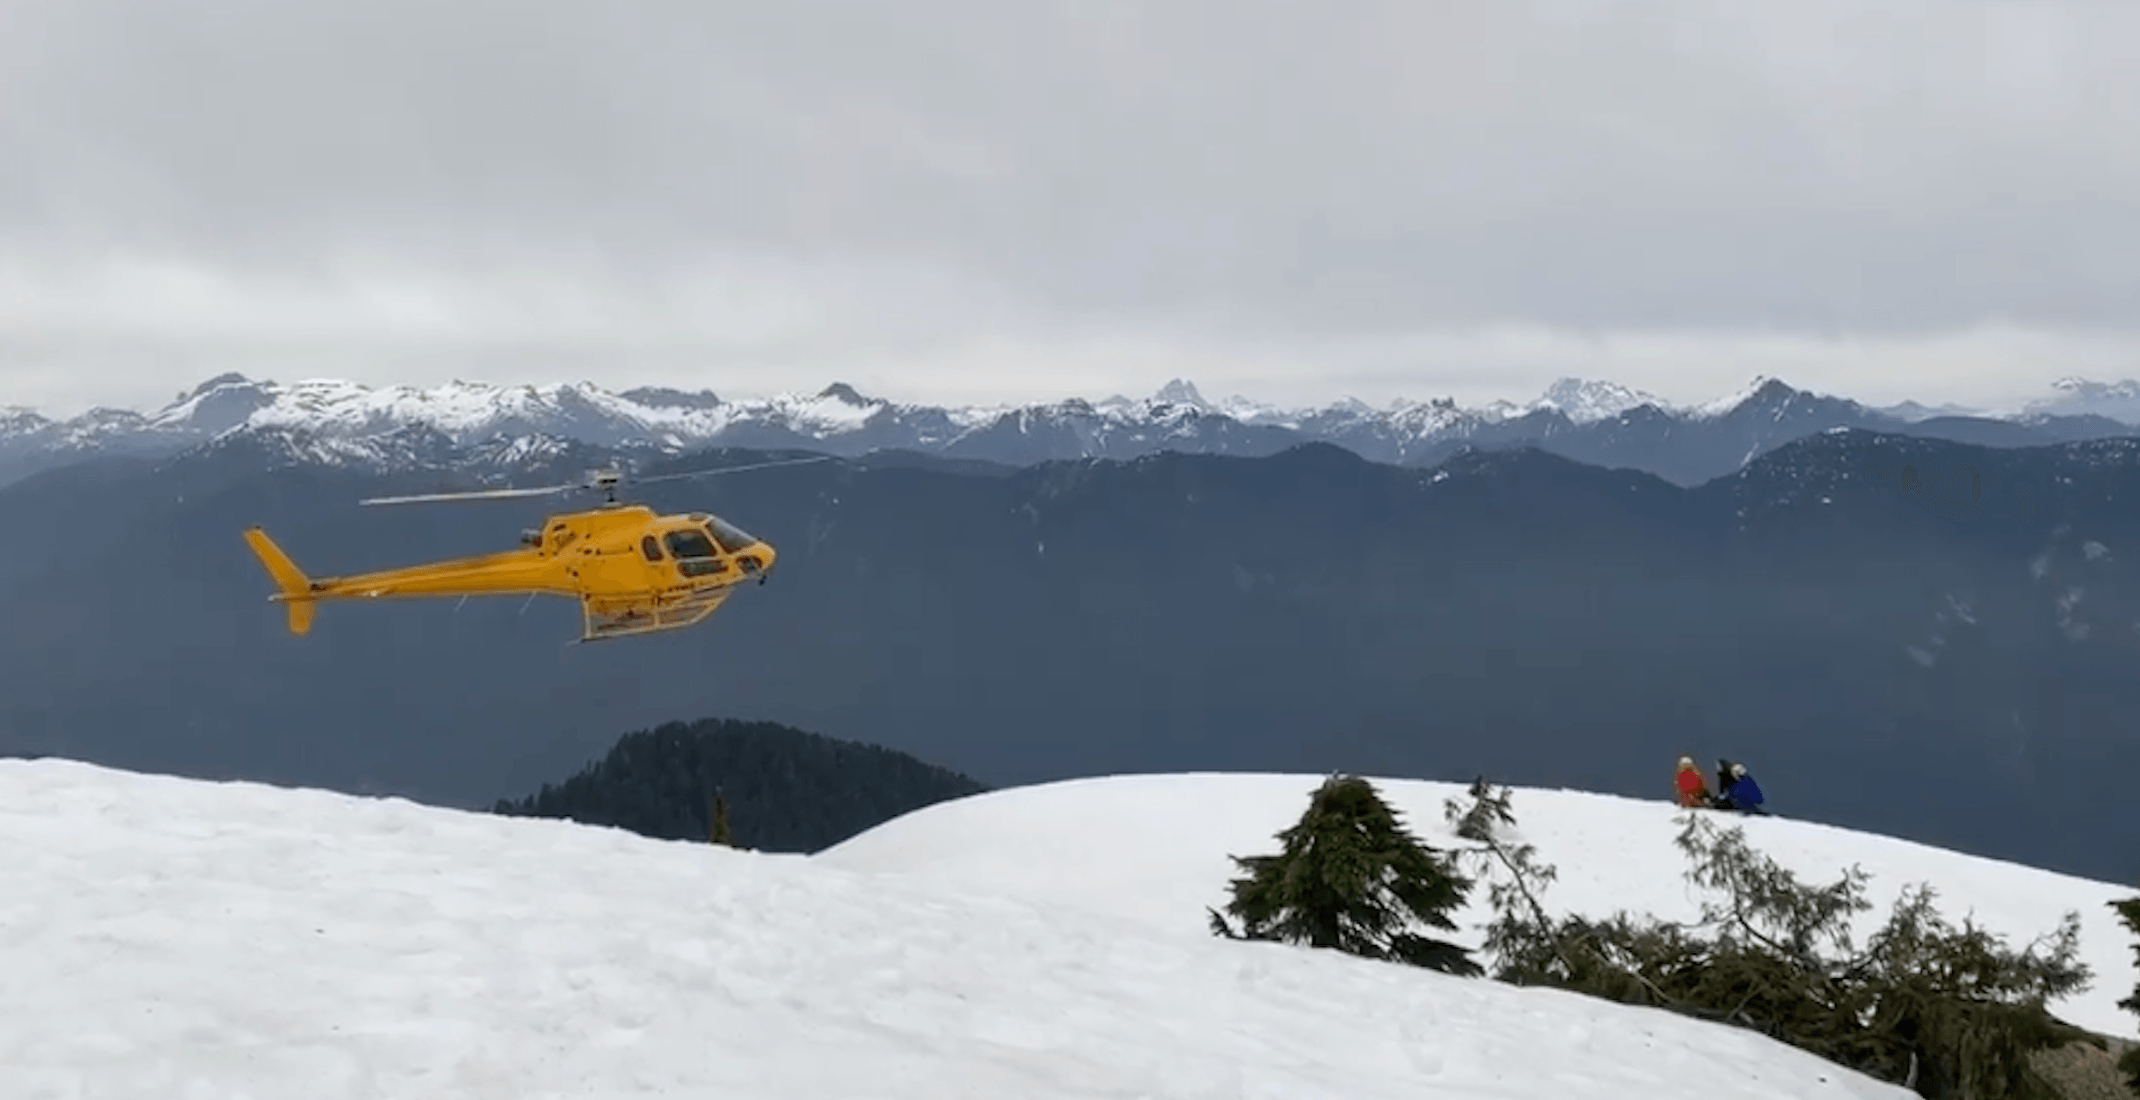 Rescue team saves injured camper from Mount Seymour (VIDEO)